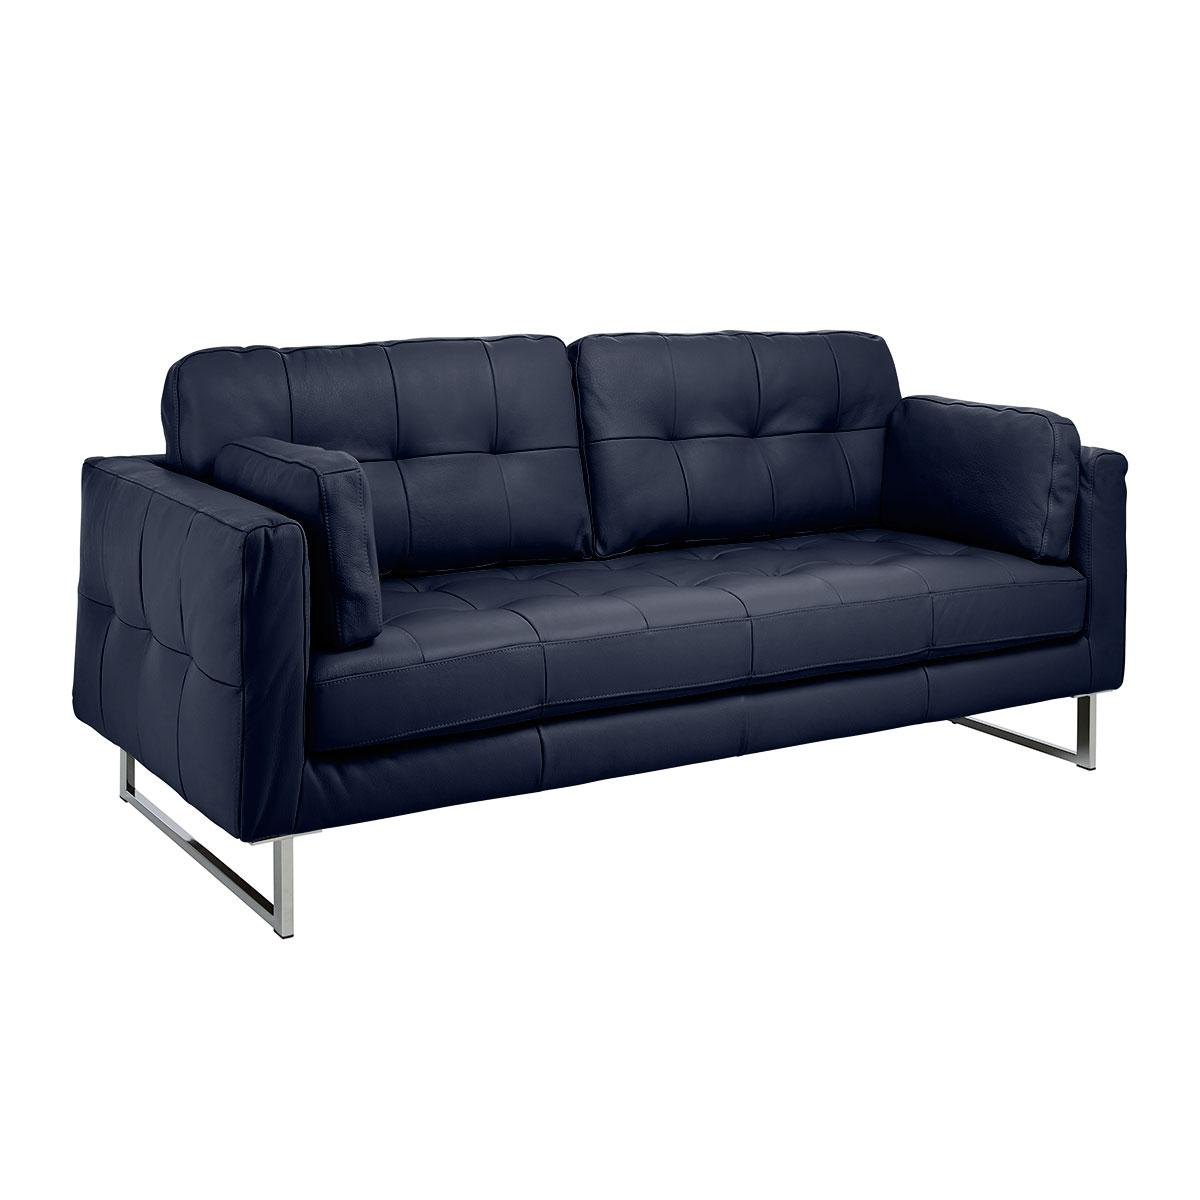 Paris II three seater sofa mollis leather petrol blue